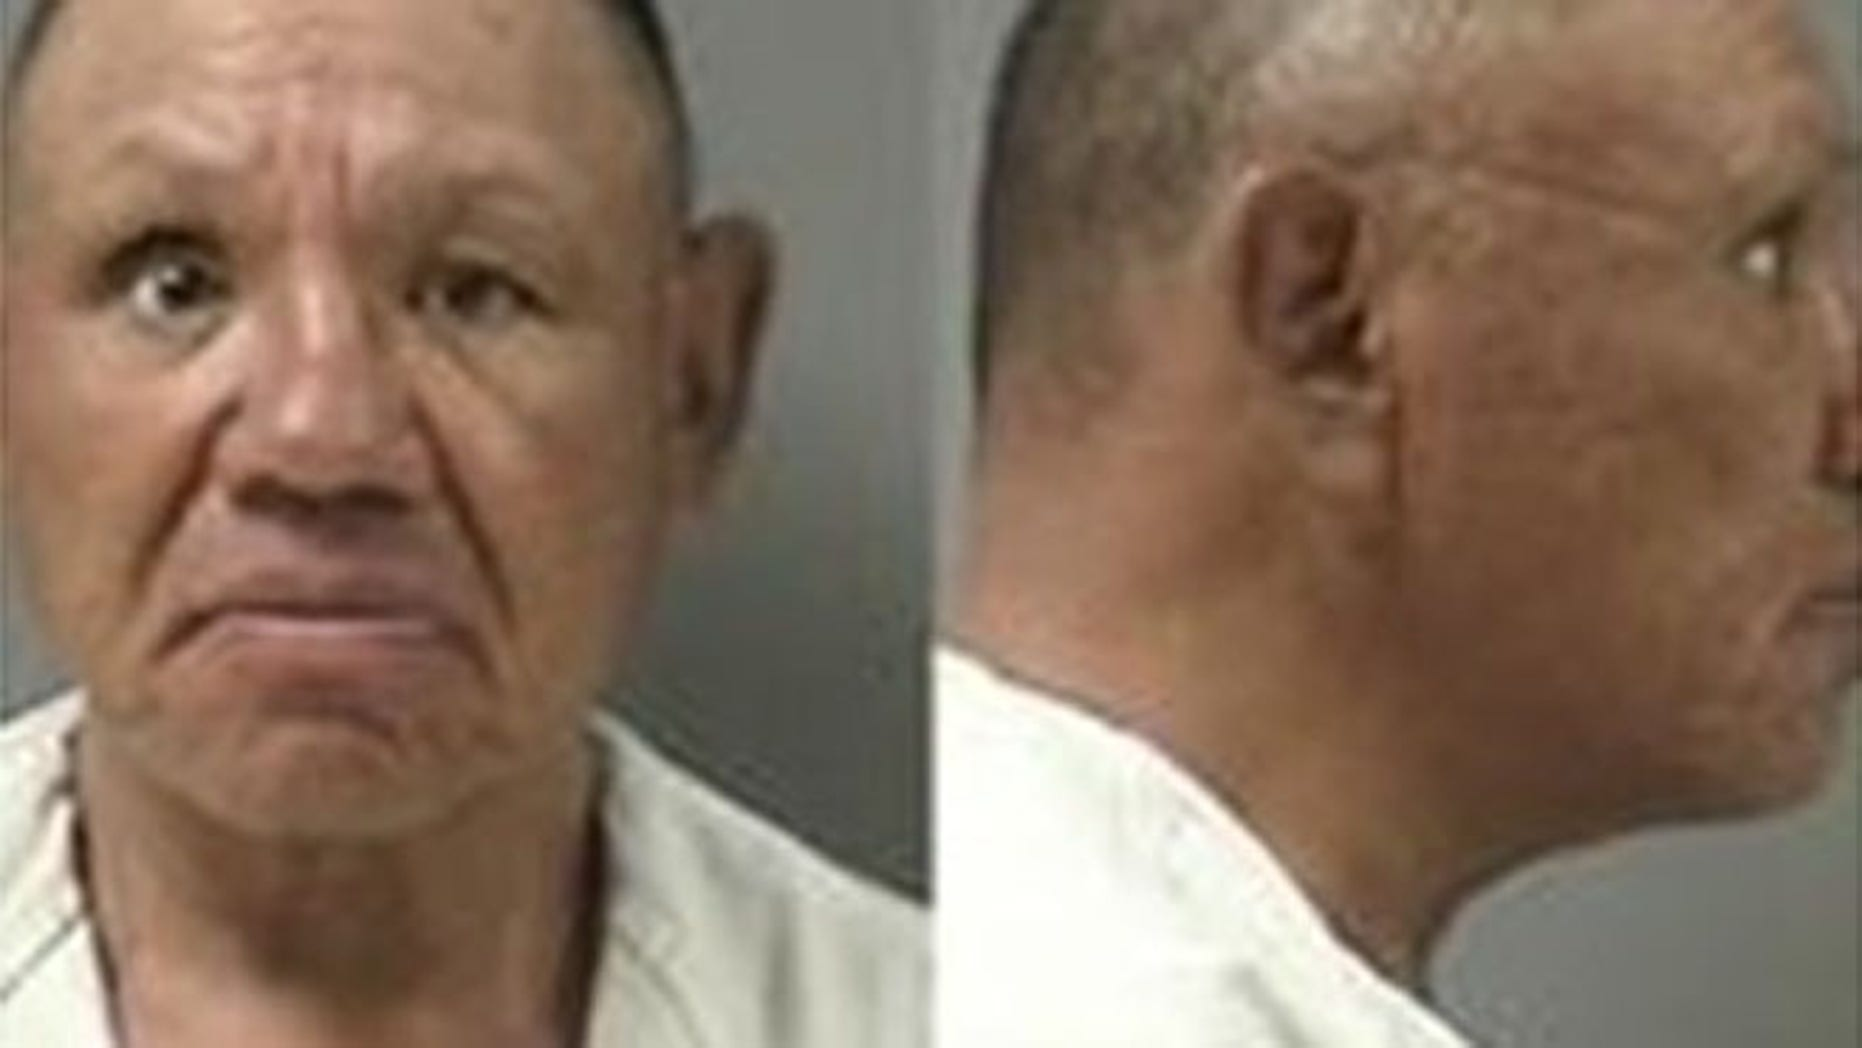 Clifford Eagle, 53, walked into the Billings Montana police station and reportedly confessed to a 25-year-old murder.